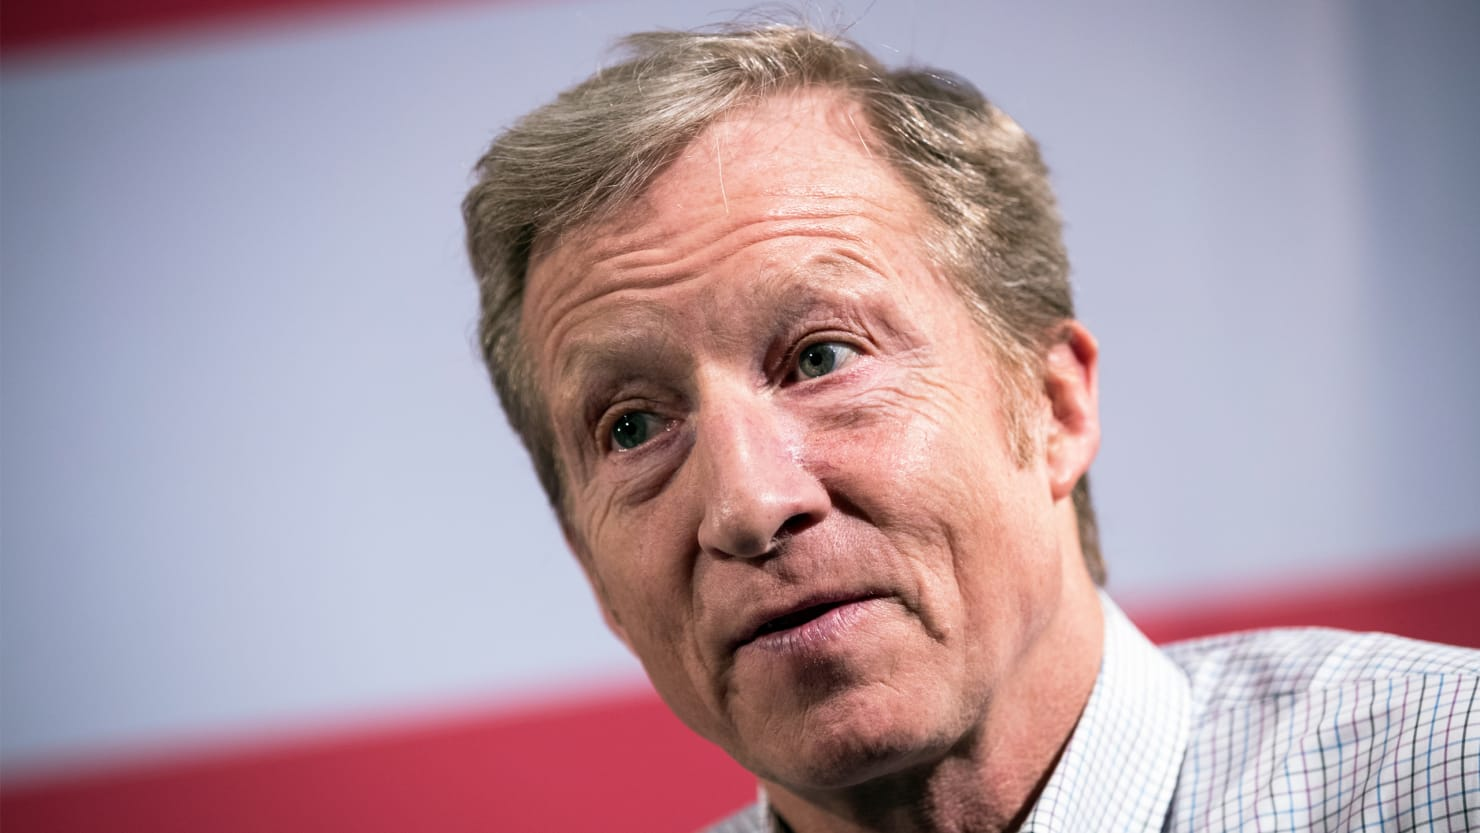 Billionaire Tom Steyer Takes Steps Towards a Possible 2020 Run